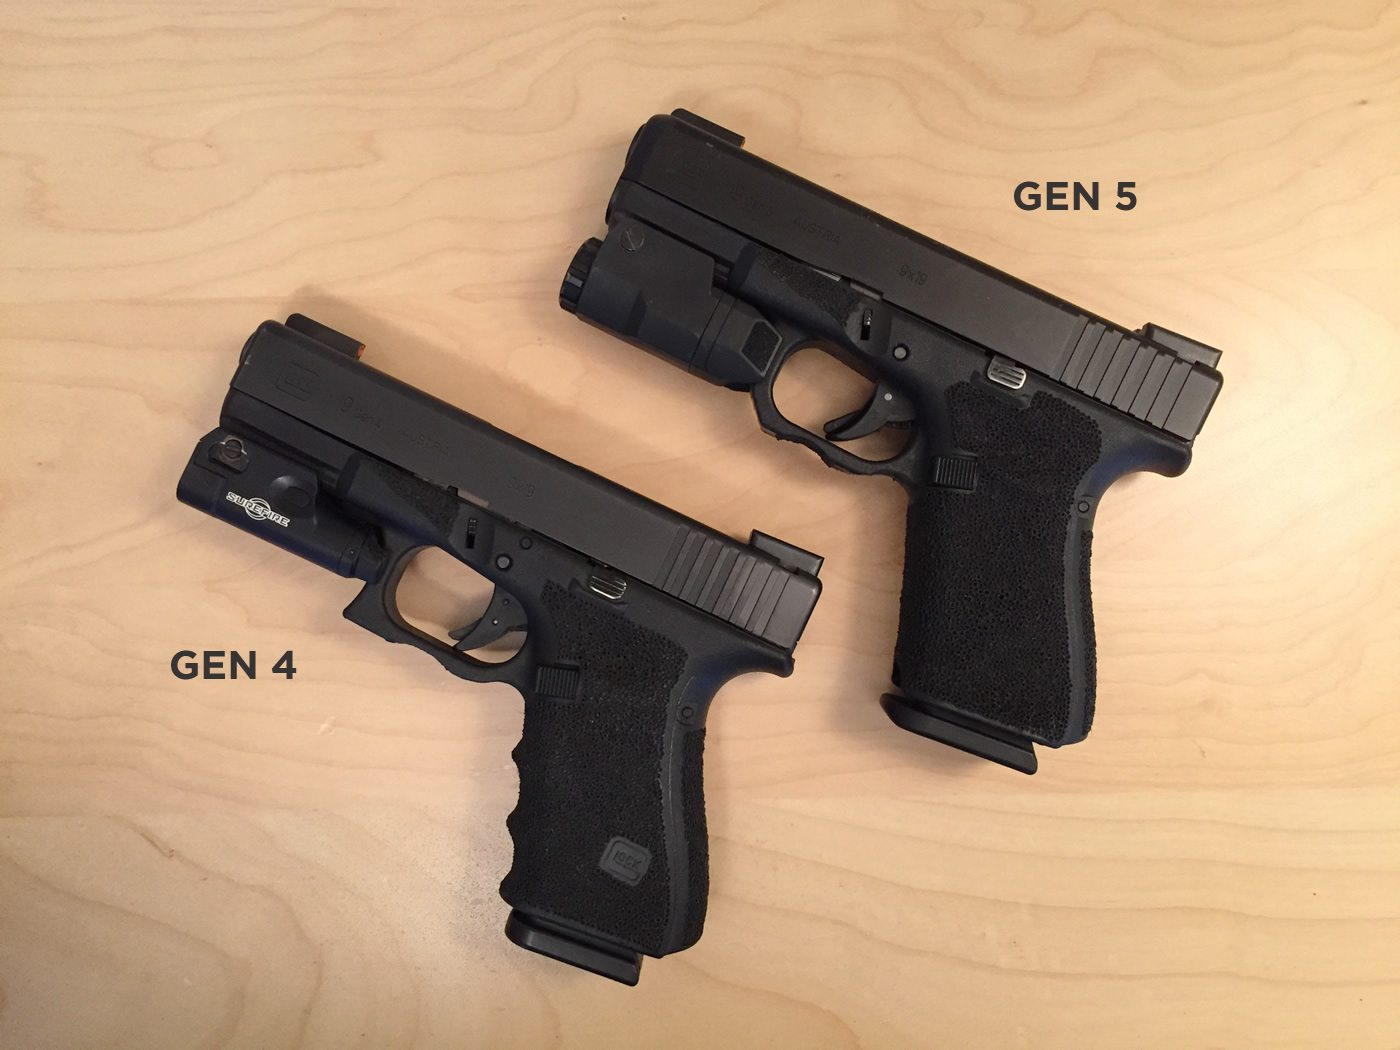 Shooting Review The Glock 19 Gen 5 Eagle Gun Range Inc